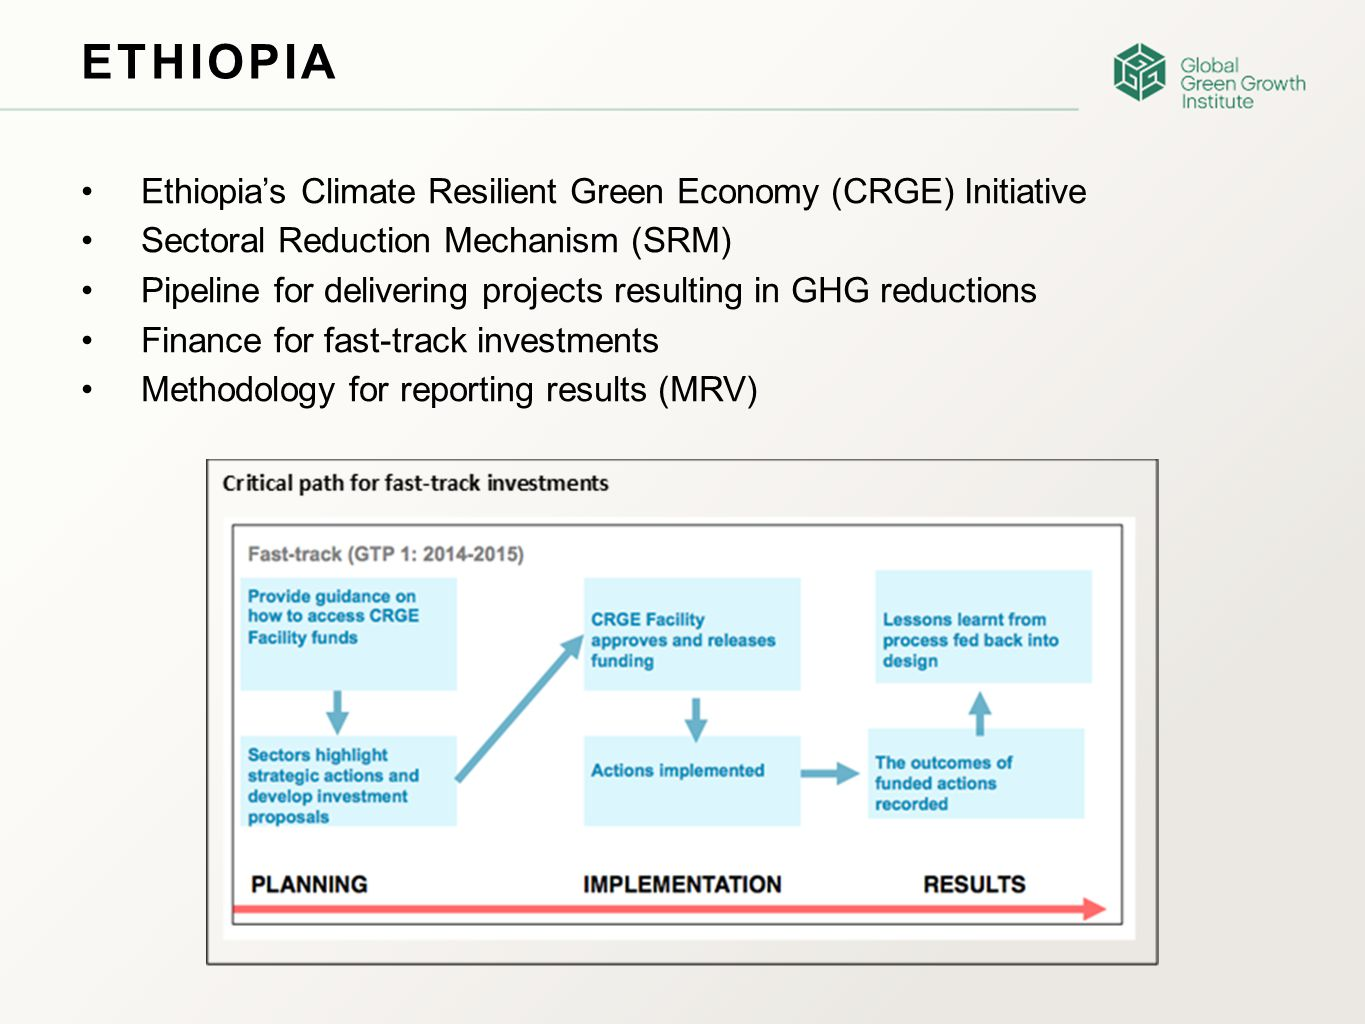 ETHIOPIA Ethiopia's Climate Resilient Green Economy (CRGE) Initiative Sectoral Reduction Mechanism (SRM) Pipeline for delivering projects resulting in GHG reductions Finance for fast-track investments Methodology for reporting results (MRV)